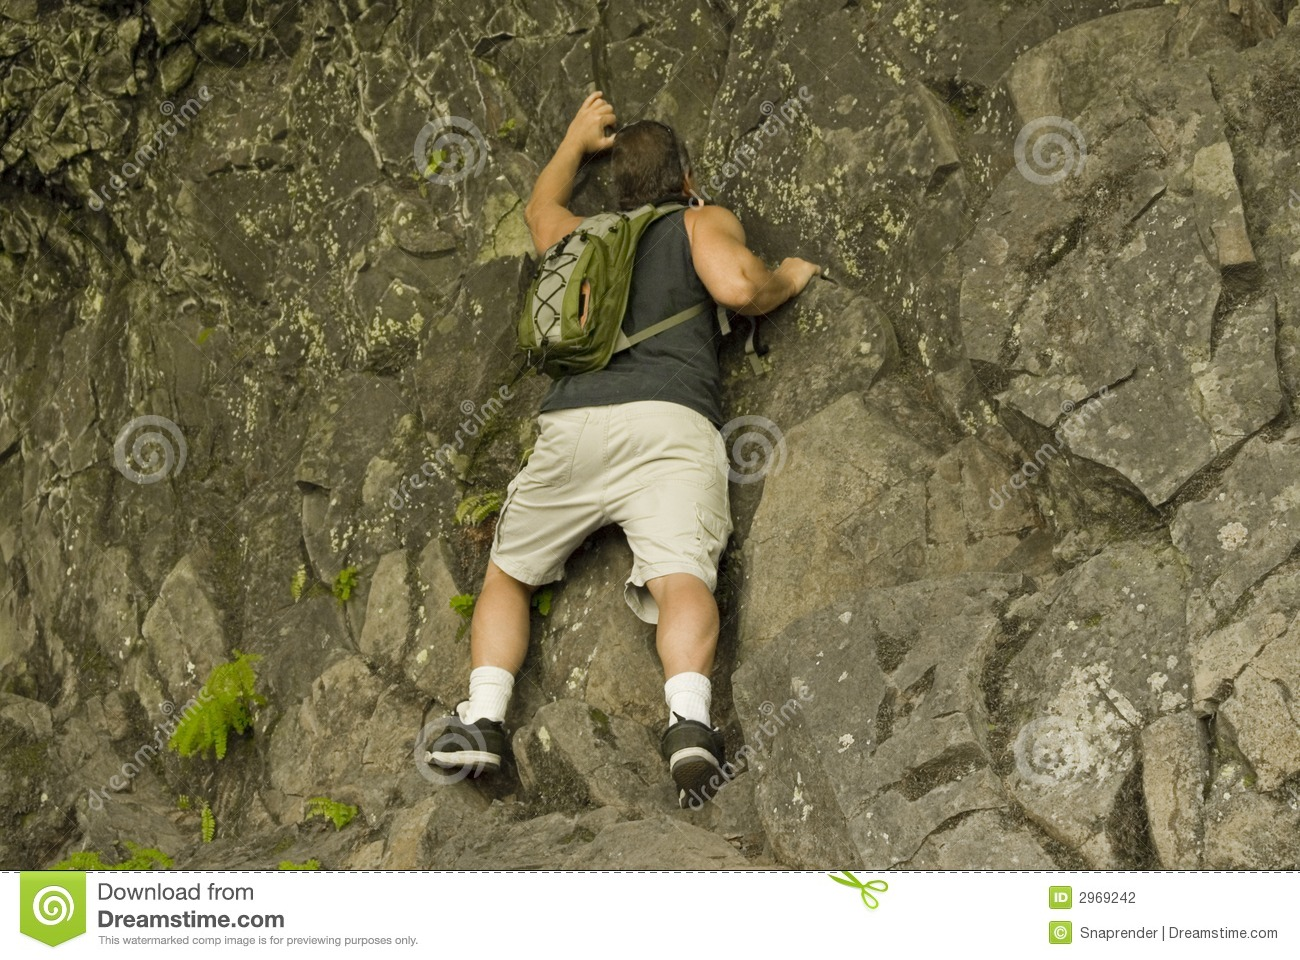 Vagmarke Forbjuden Infart Enkelriktad likewise Stock Photography Man Rock Climbing Image2969242 additionally Natur Und Umweltpark Guestrow besides The Old Man Of The Desert 544153352 moreover 839741 Man Running From The Avalanche Wallpaper. on 128